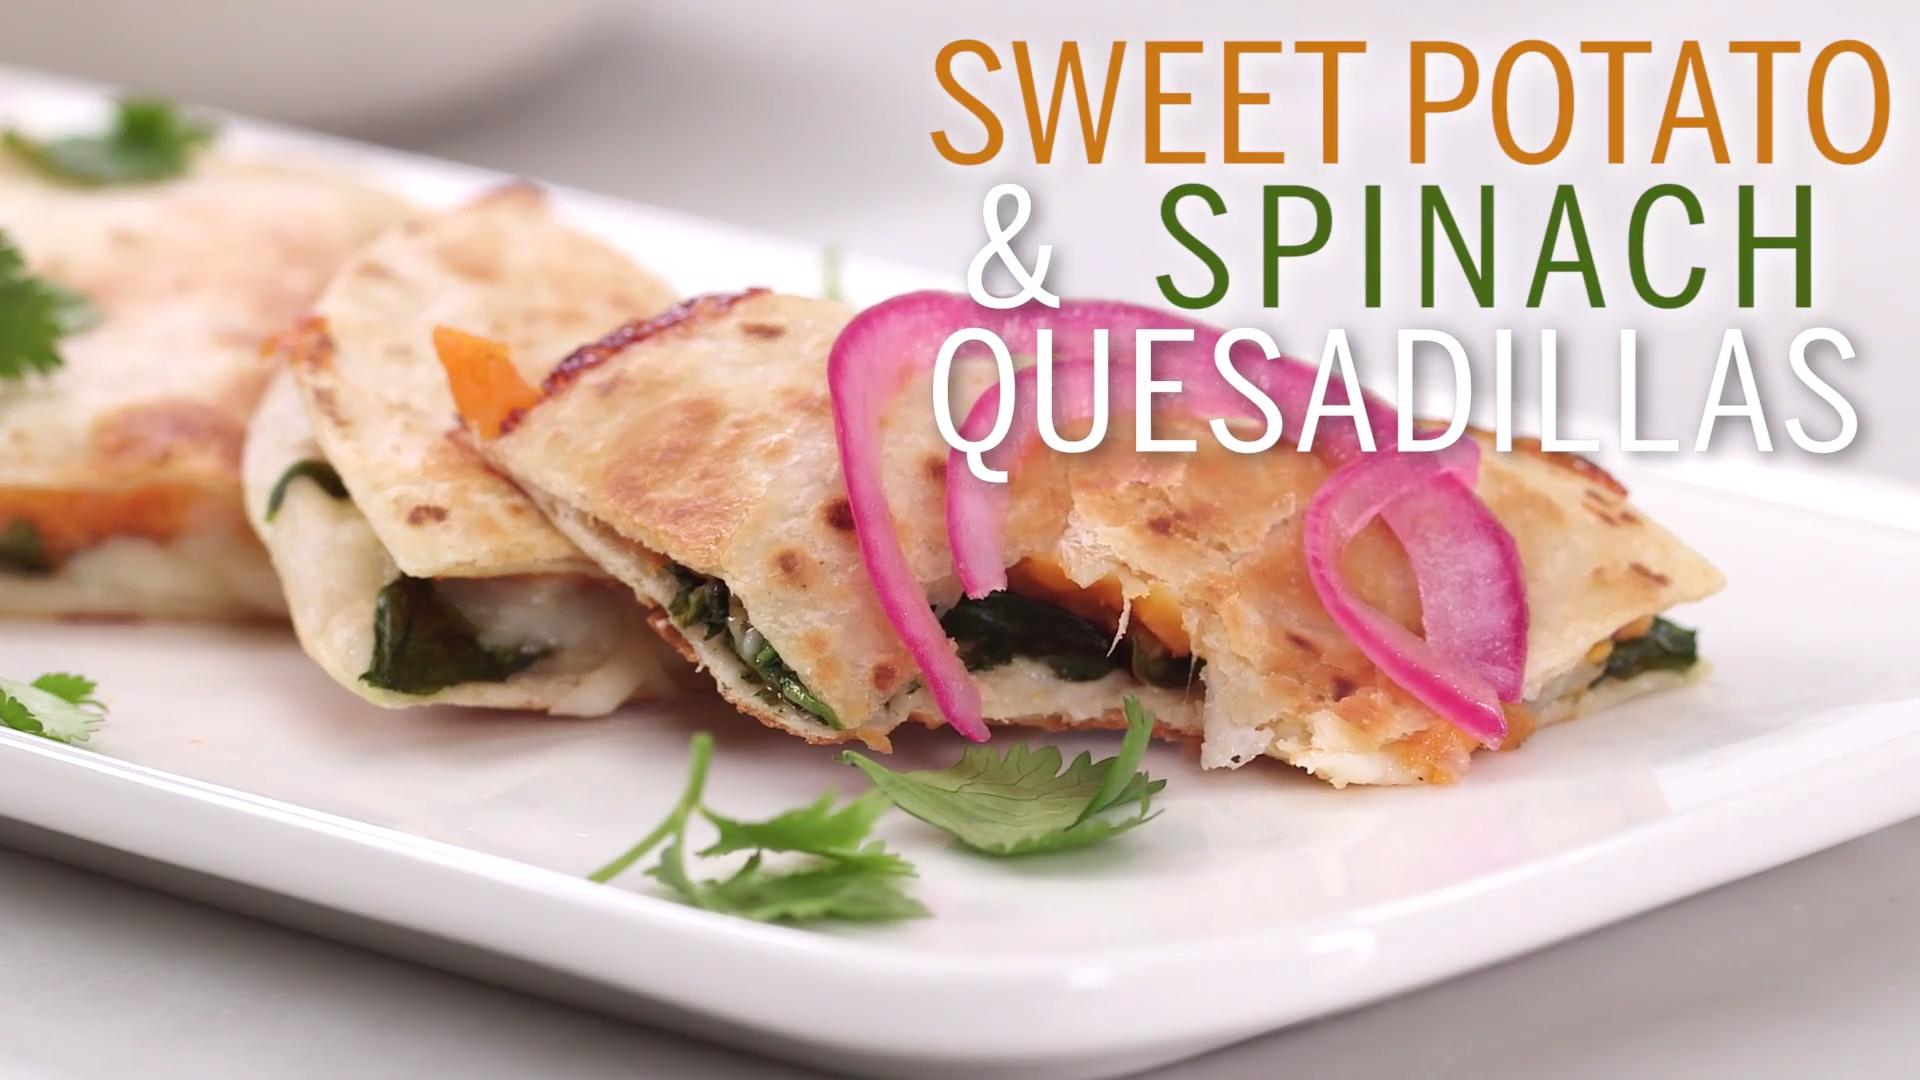 Sweet Potato and Spinach Quesadillas